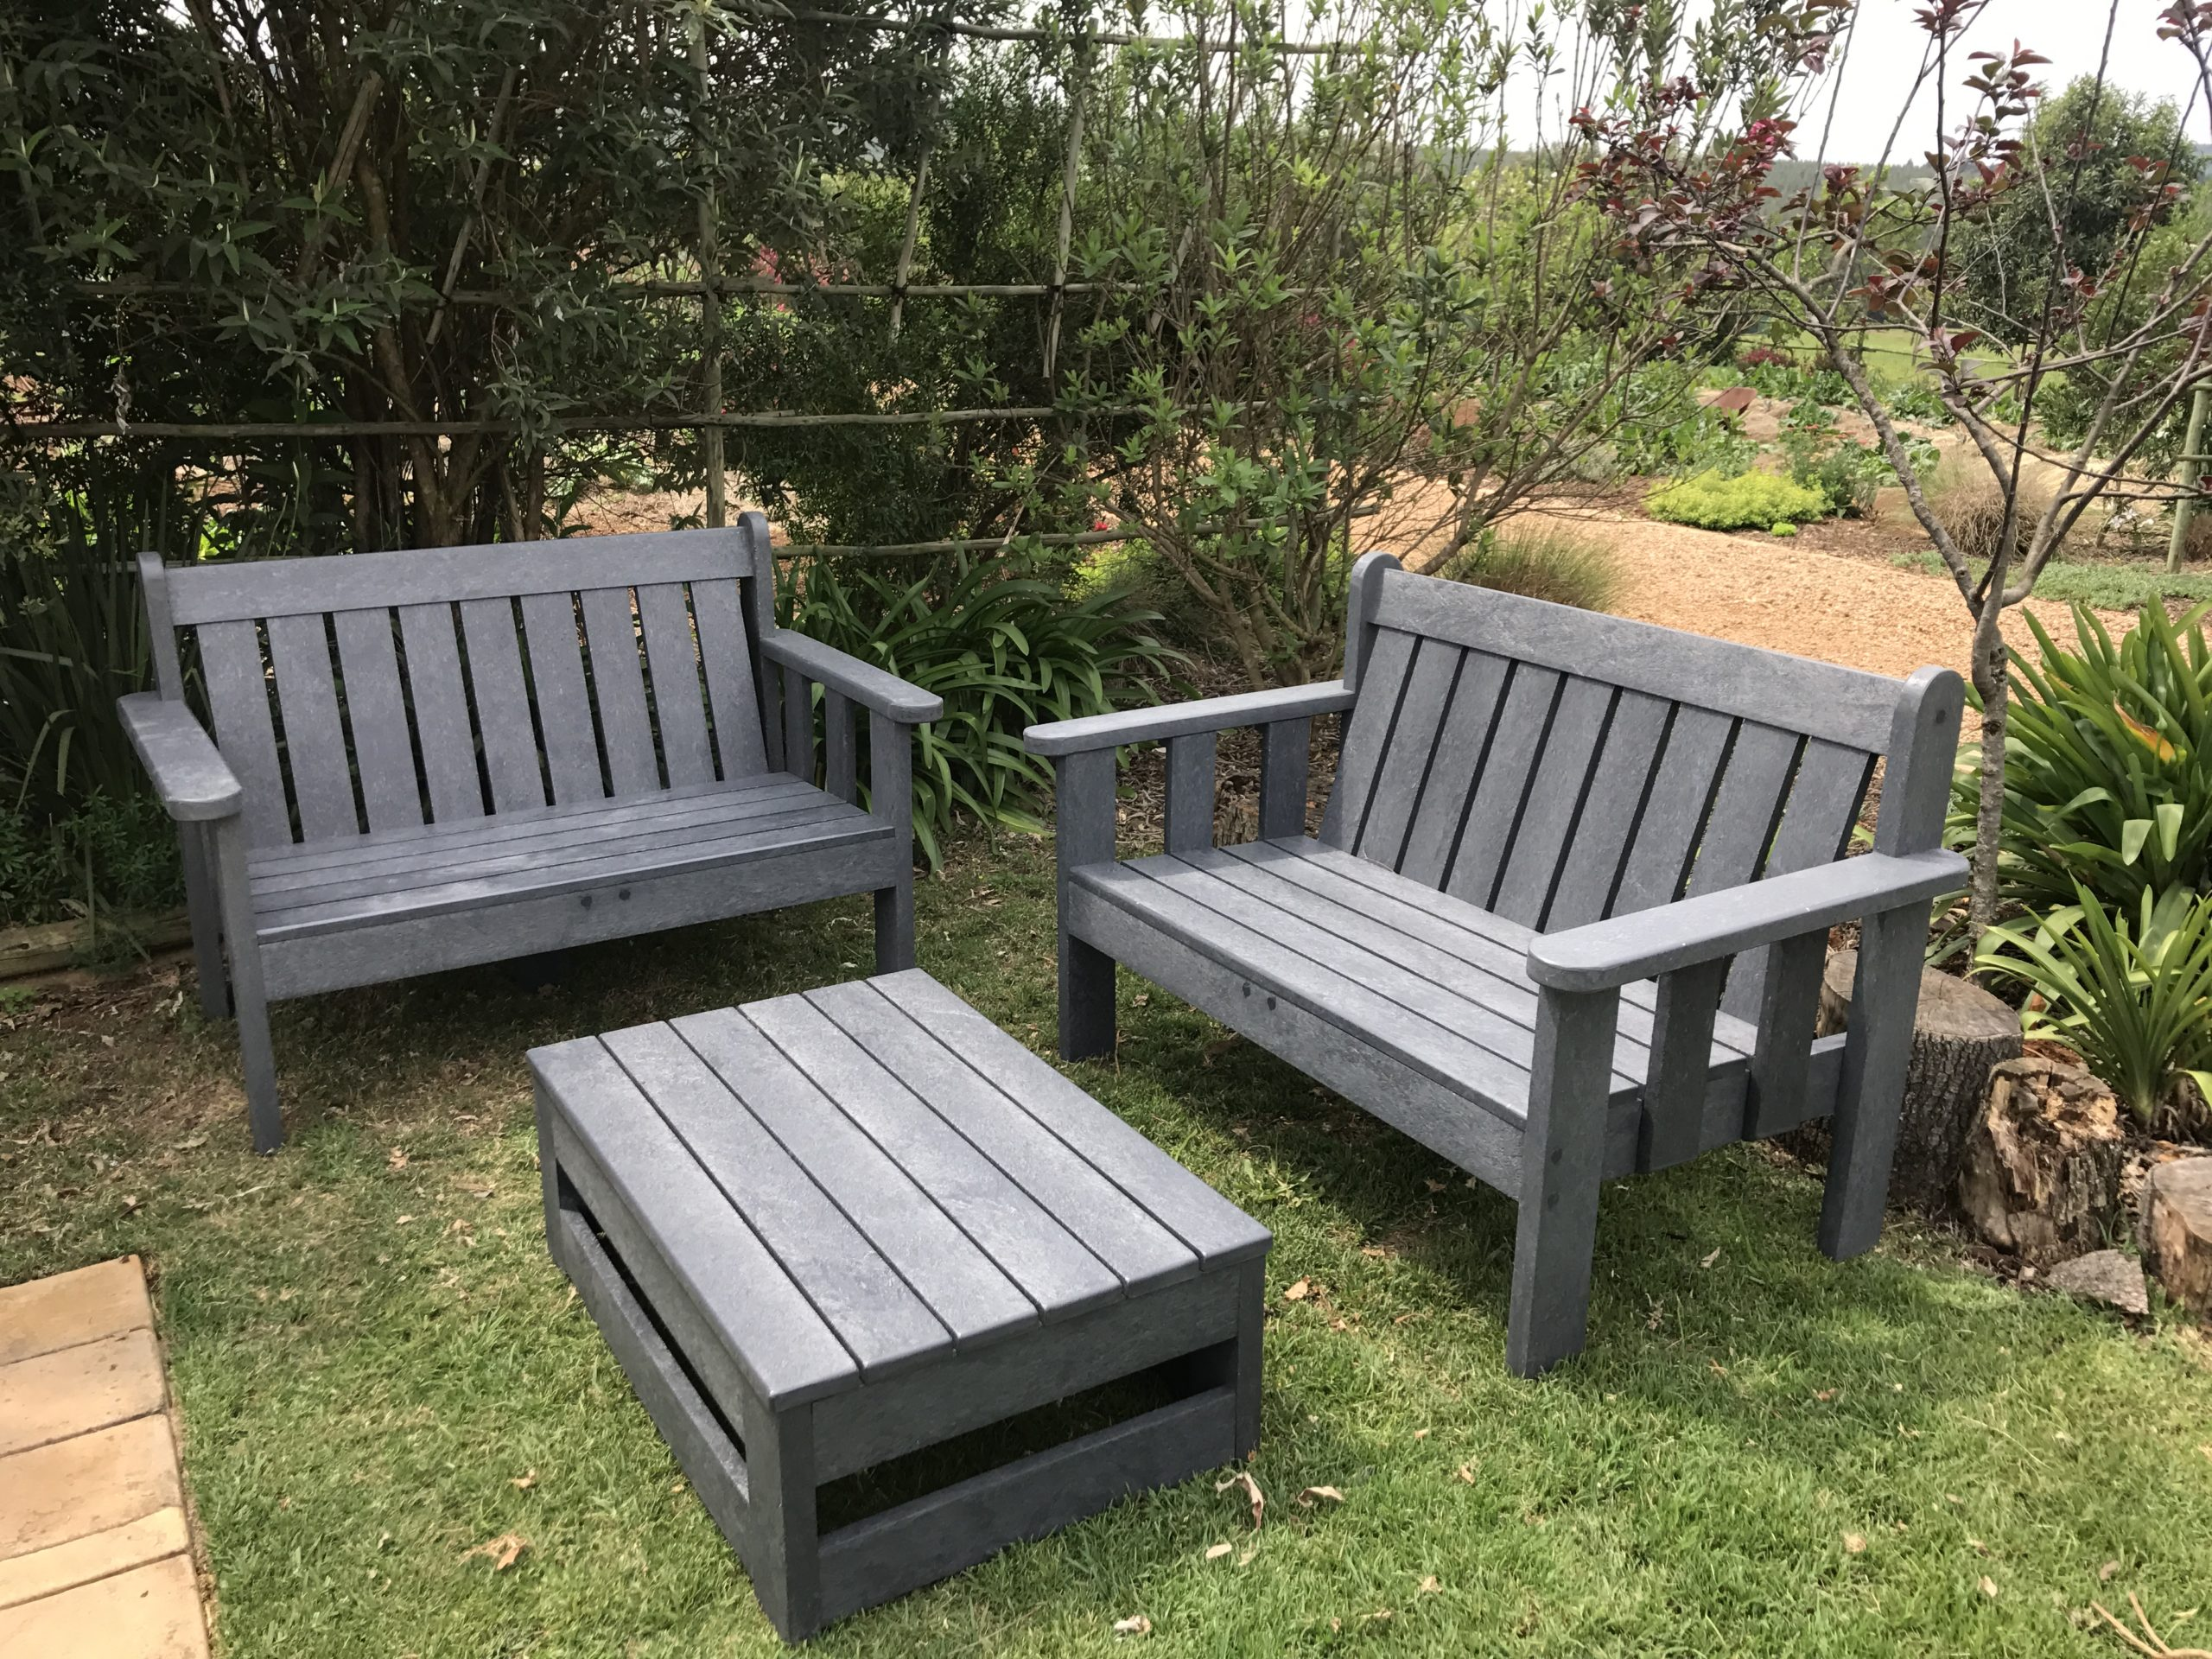 Envirotimbers – Specialists in Recycled Plastic Timber Furniture